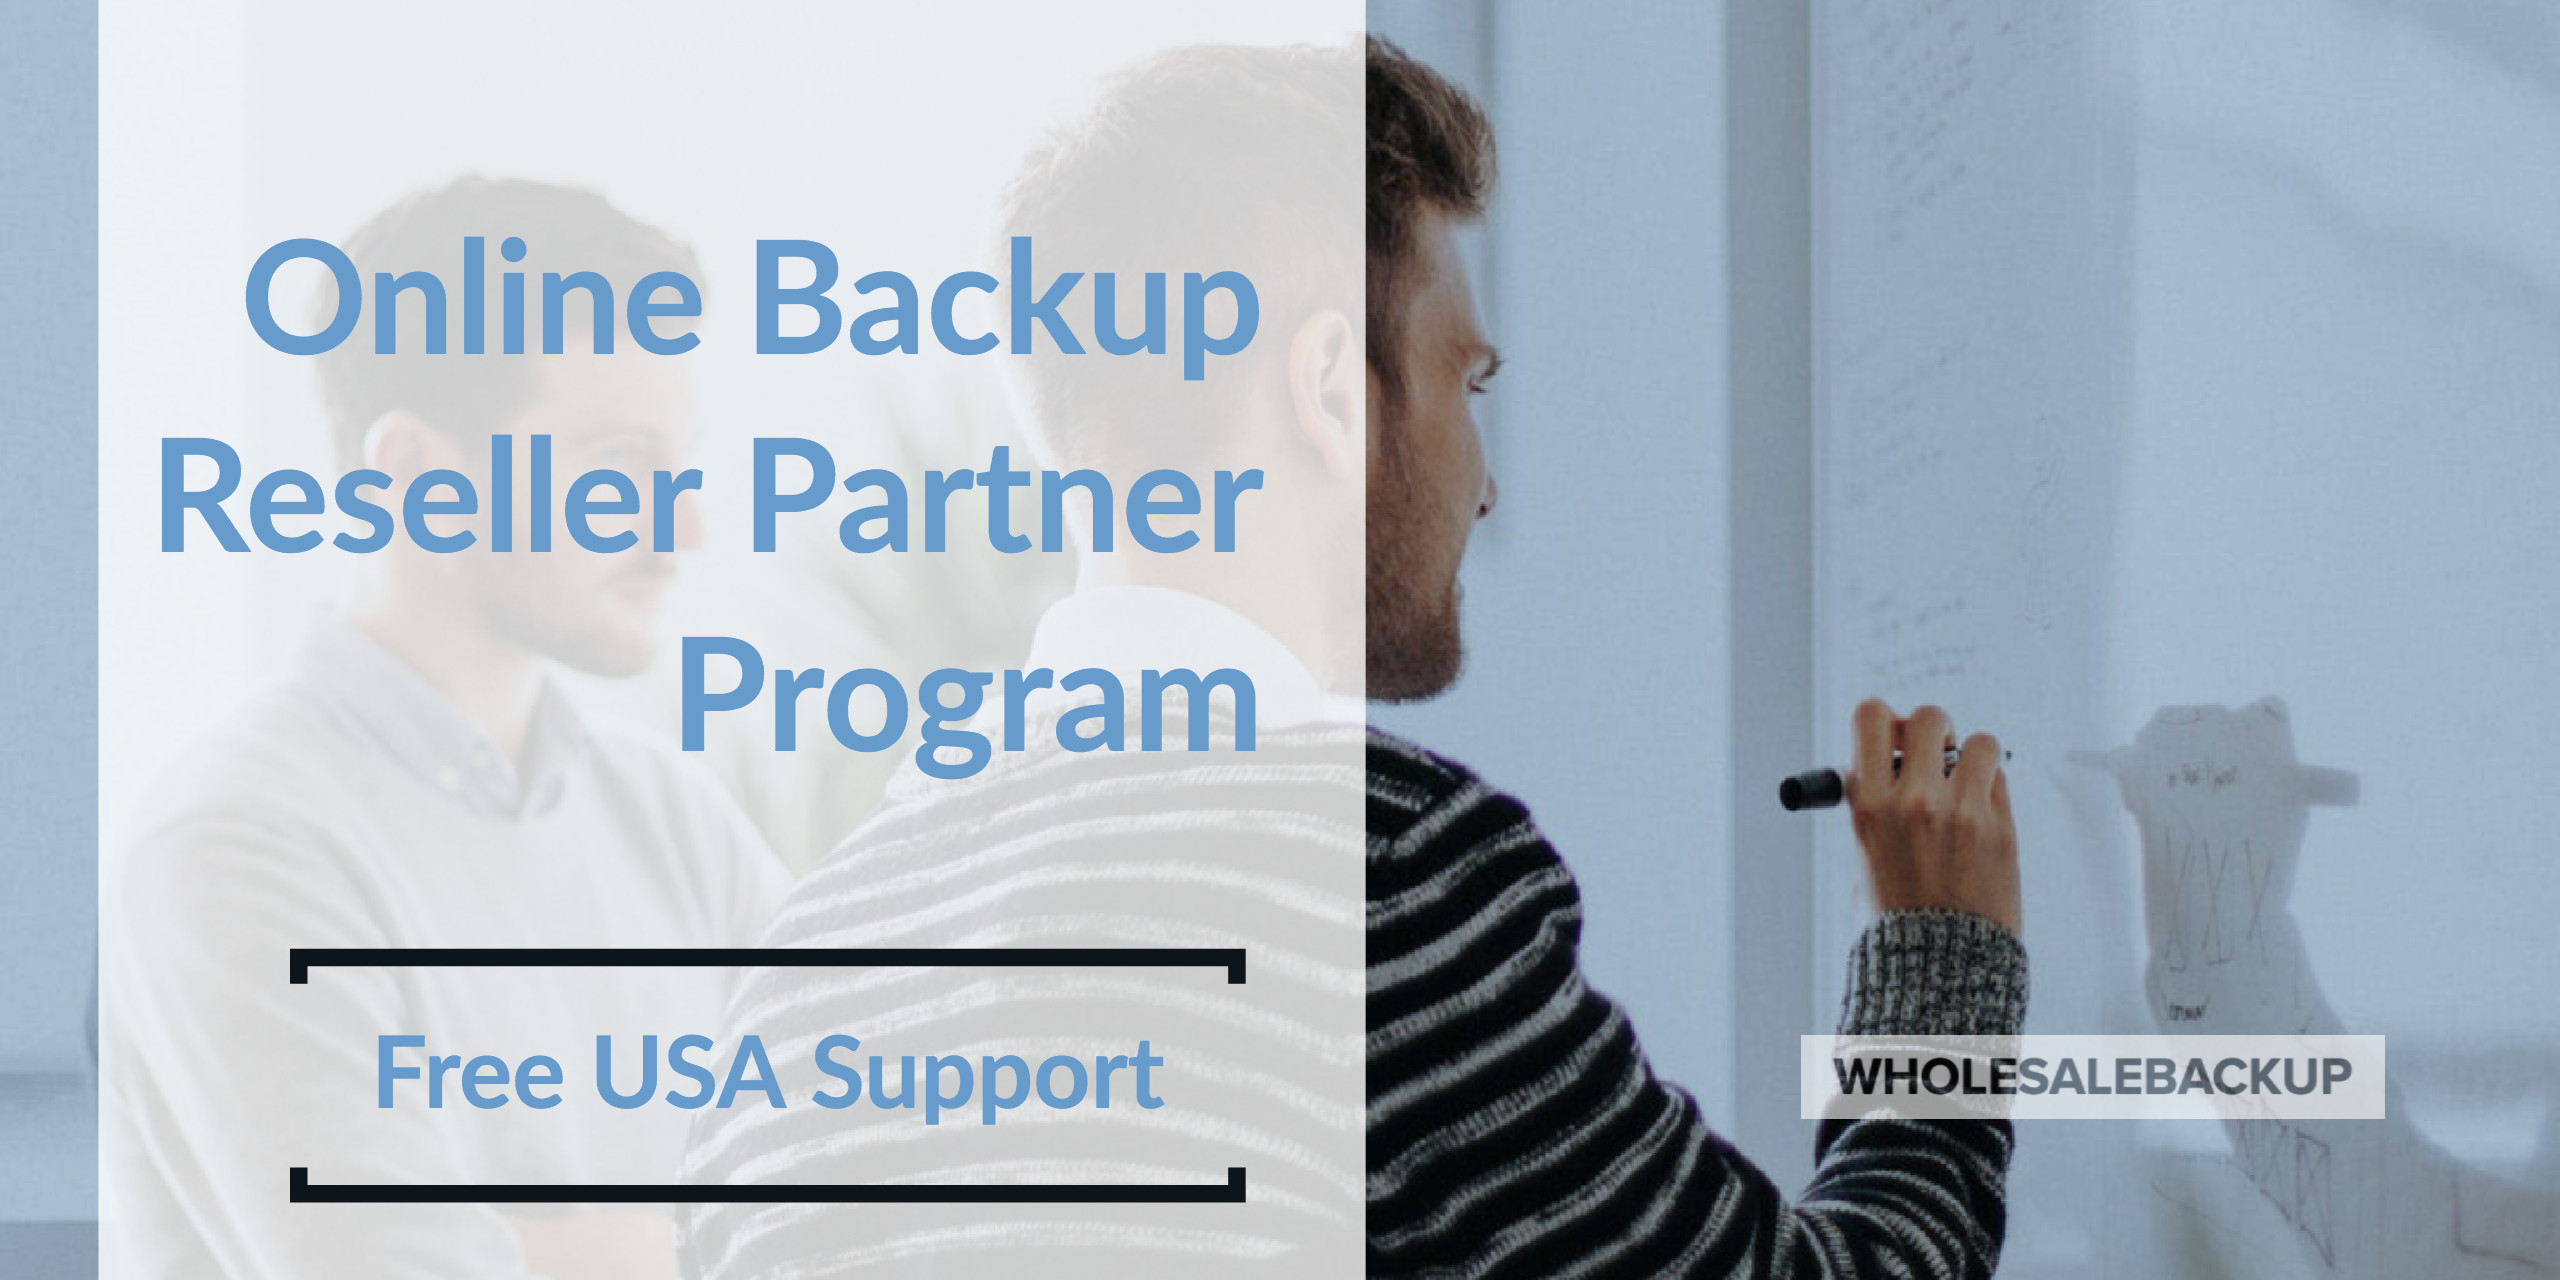 online backup reseller partnership program features and benefits